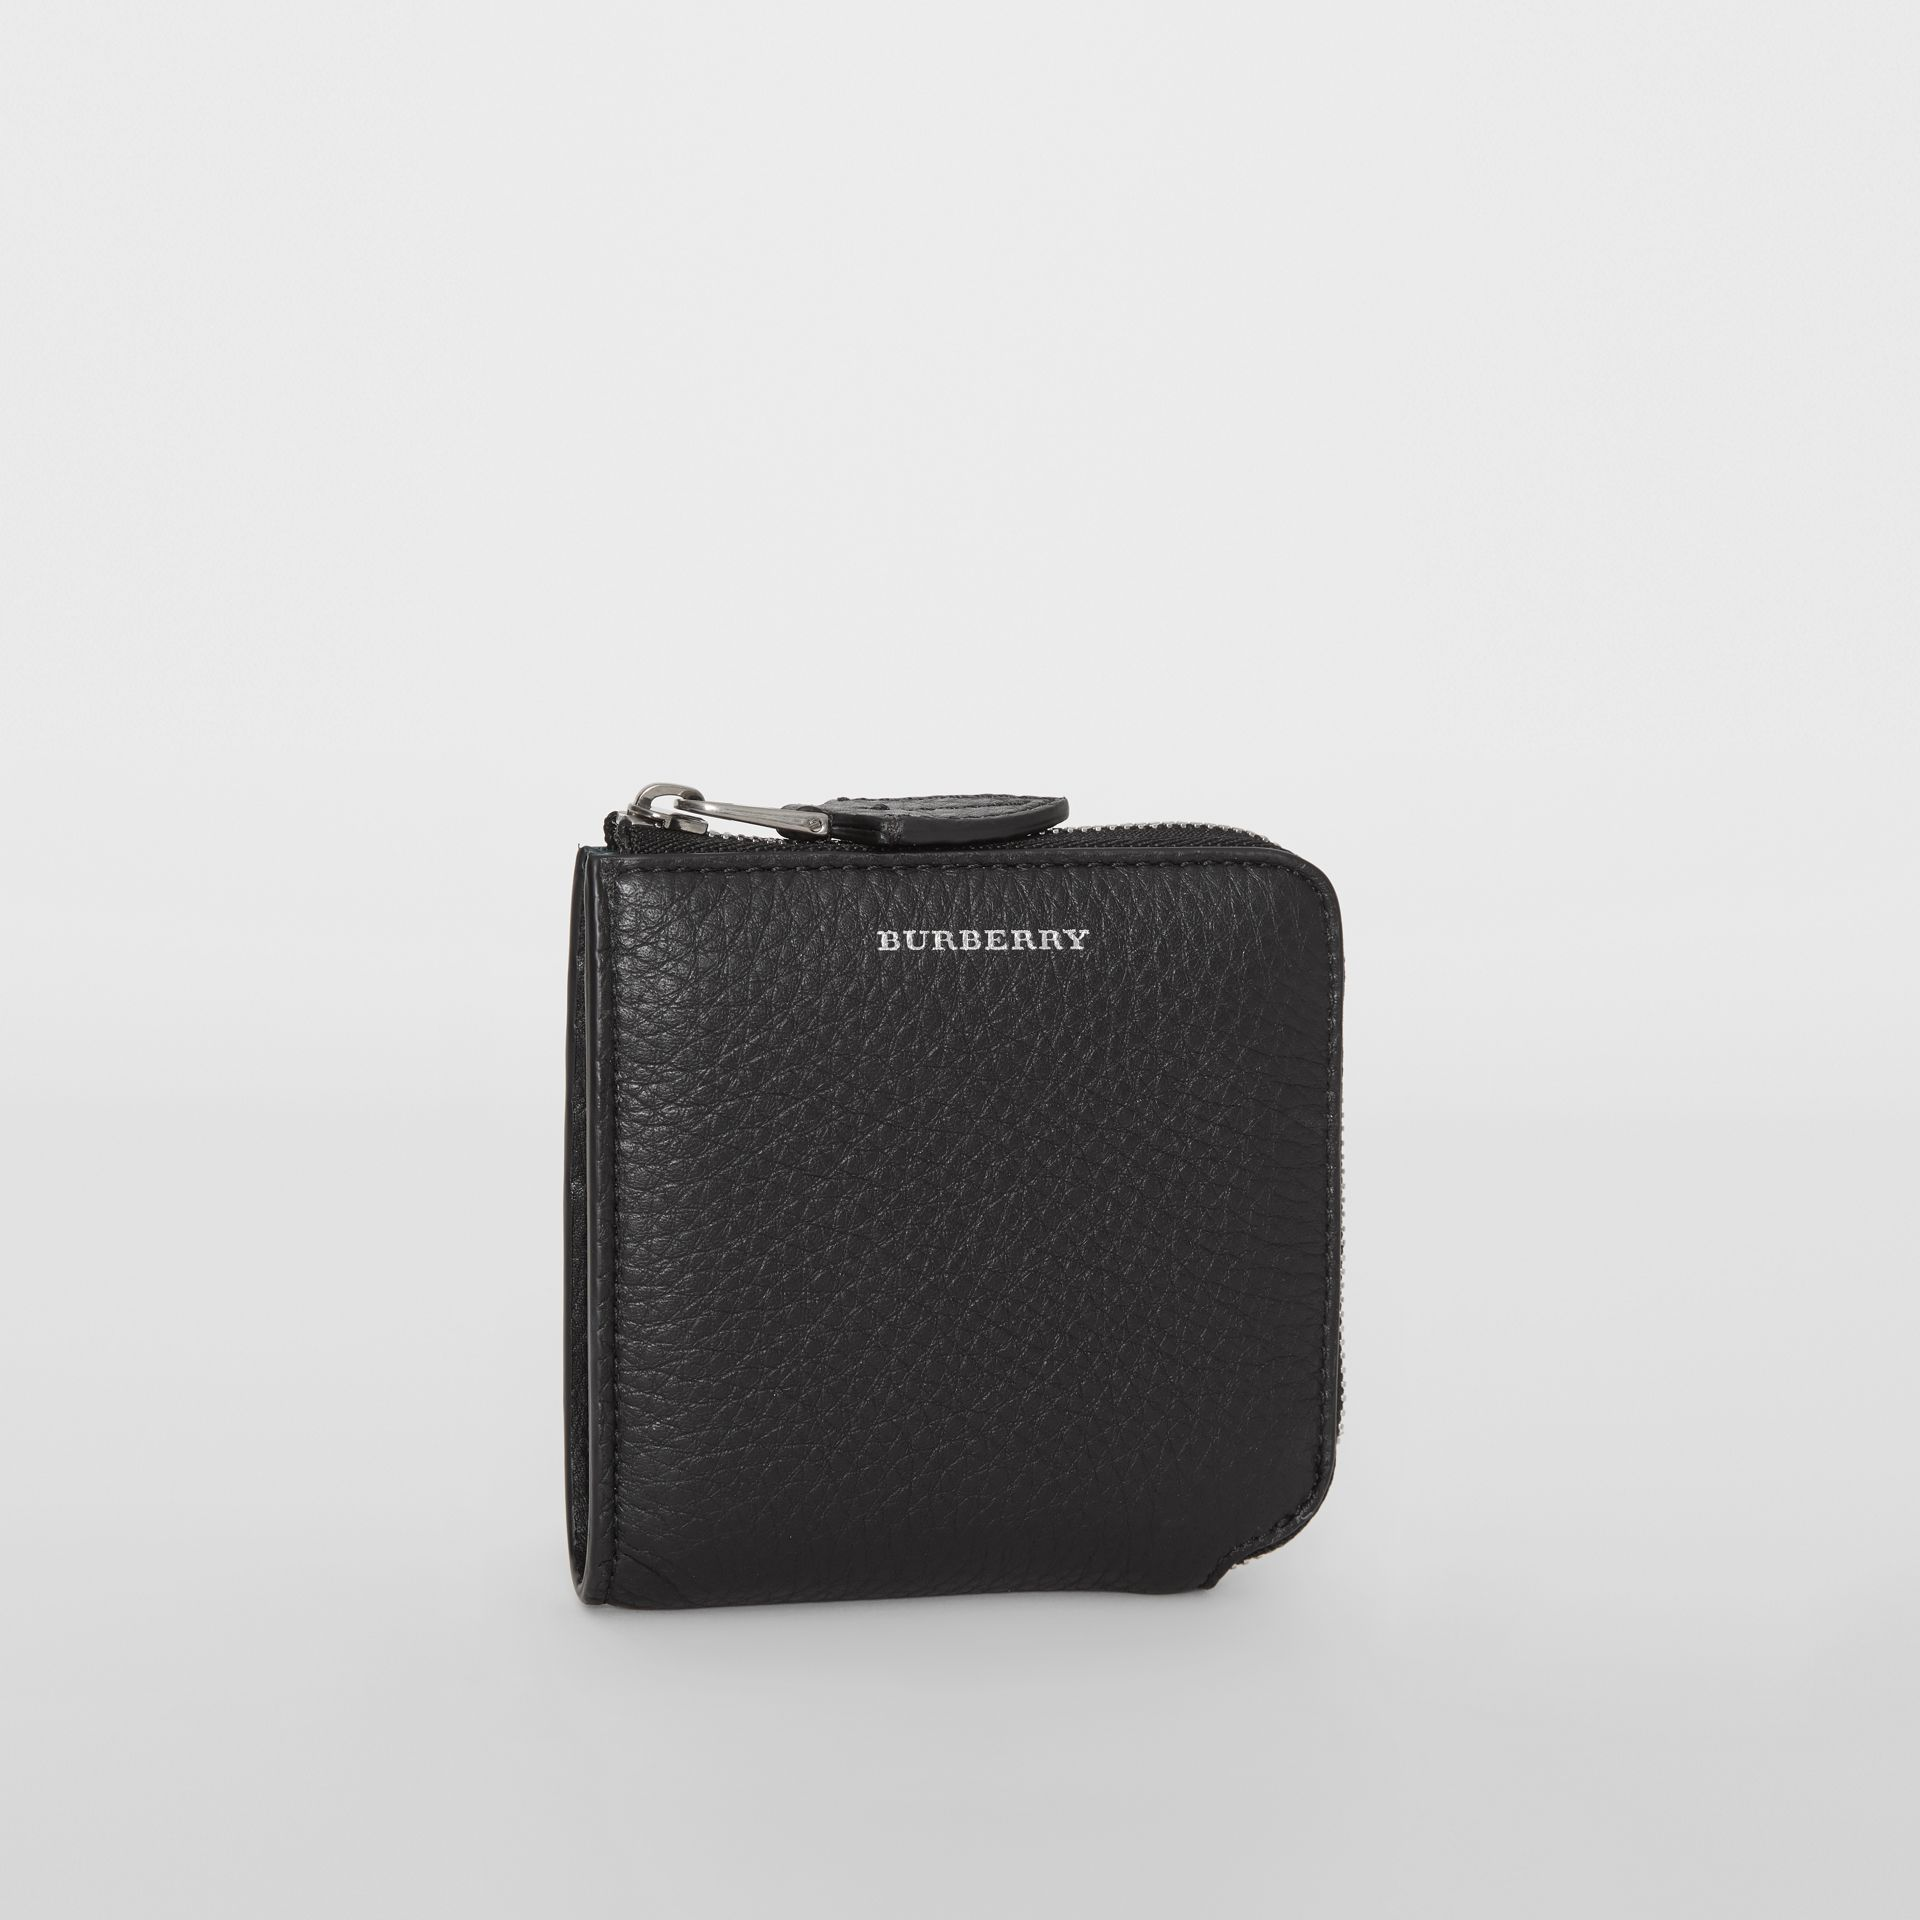 Grainy Leather Square Ziparound Wallet in Black - Women | Burberry - gallery image 5